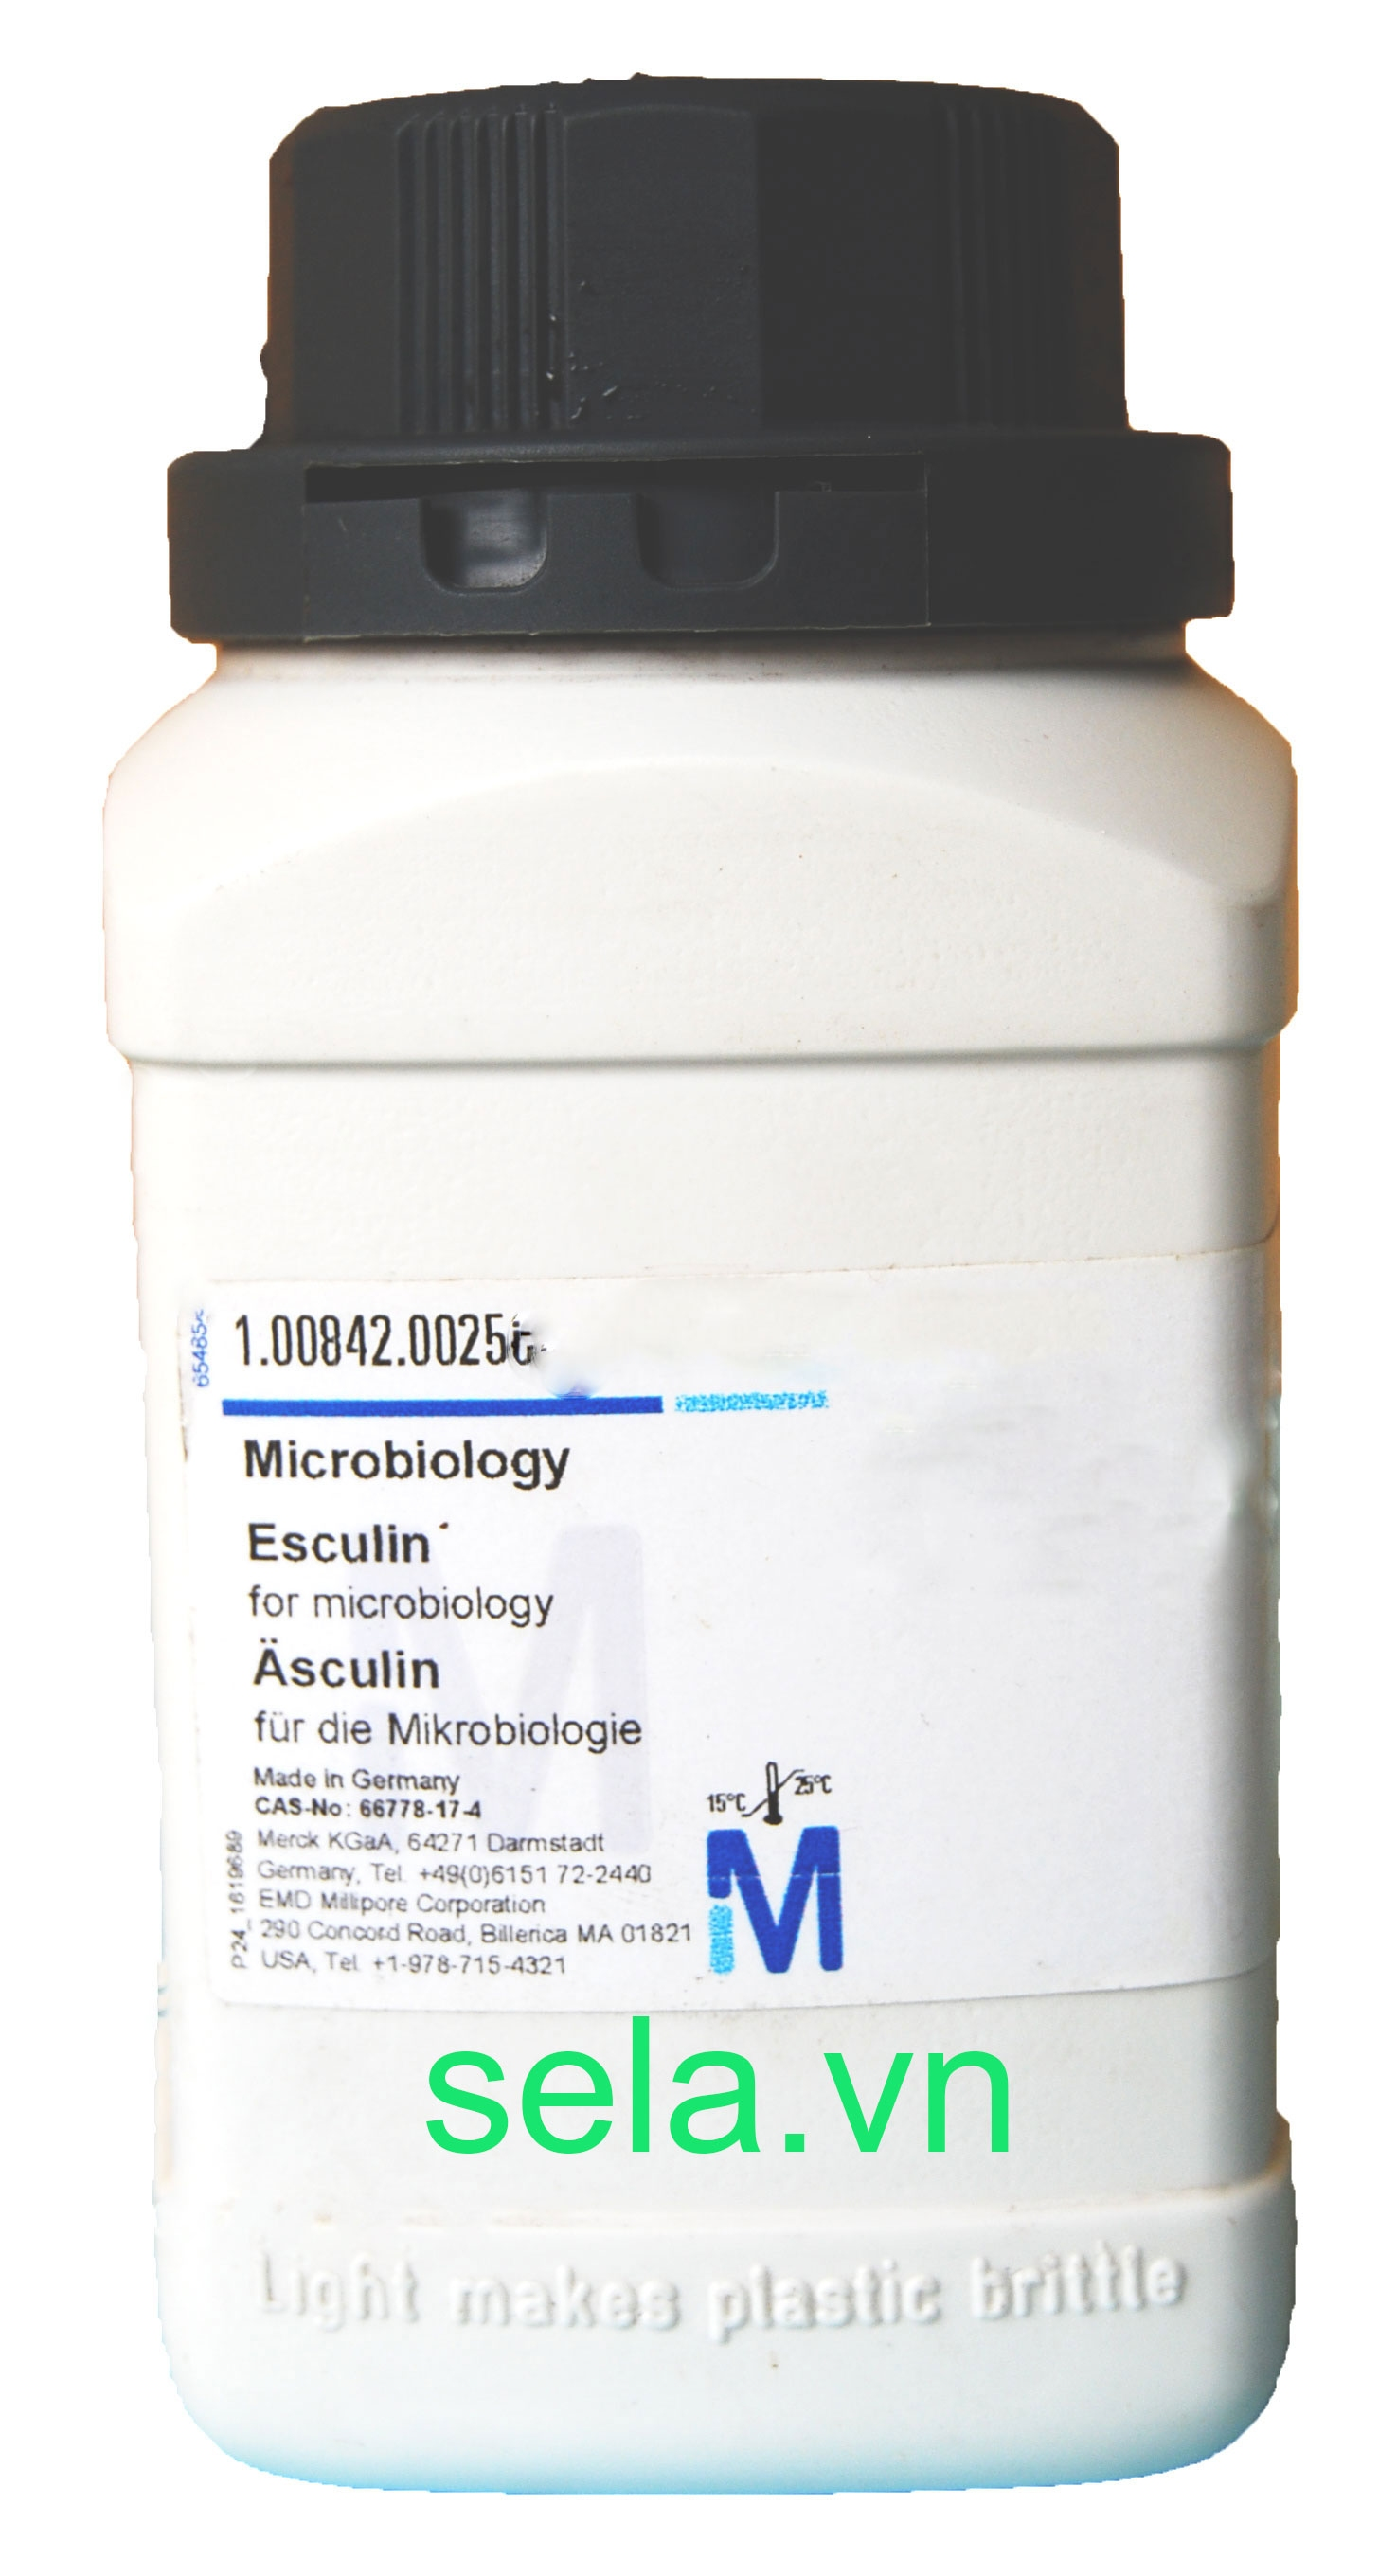 Esculin for microbiology